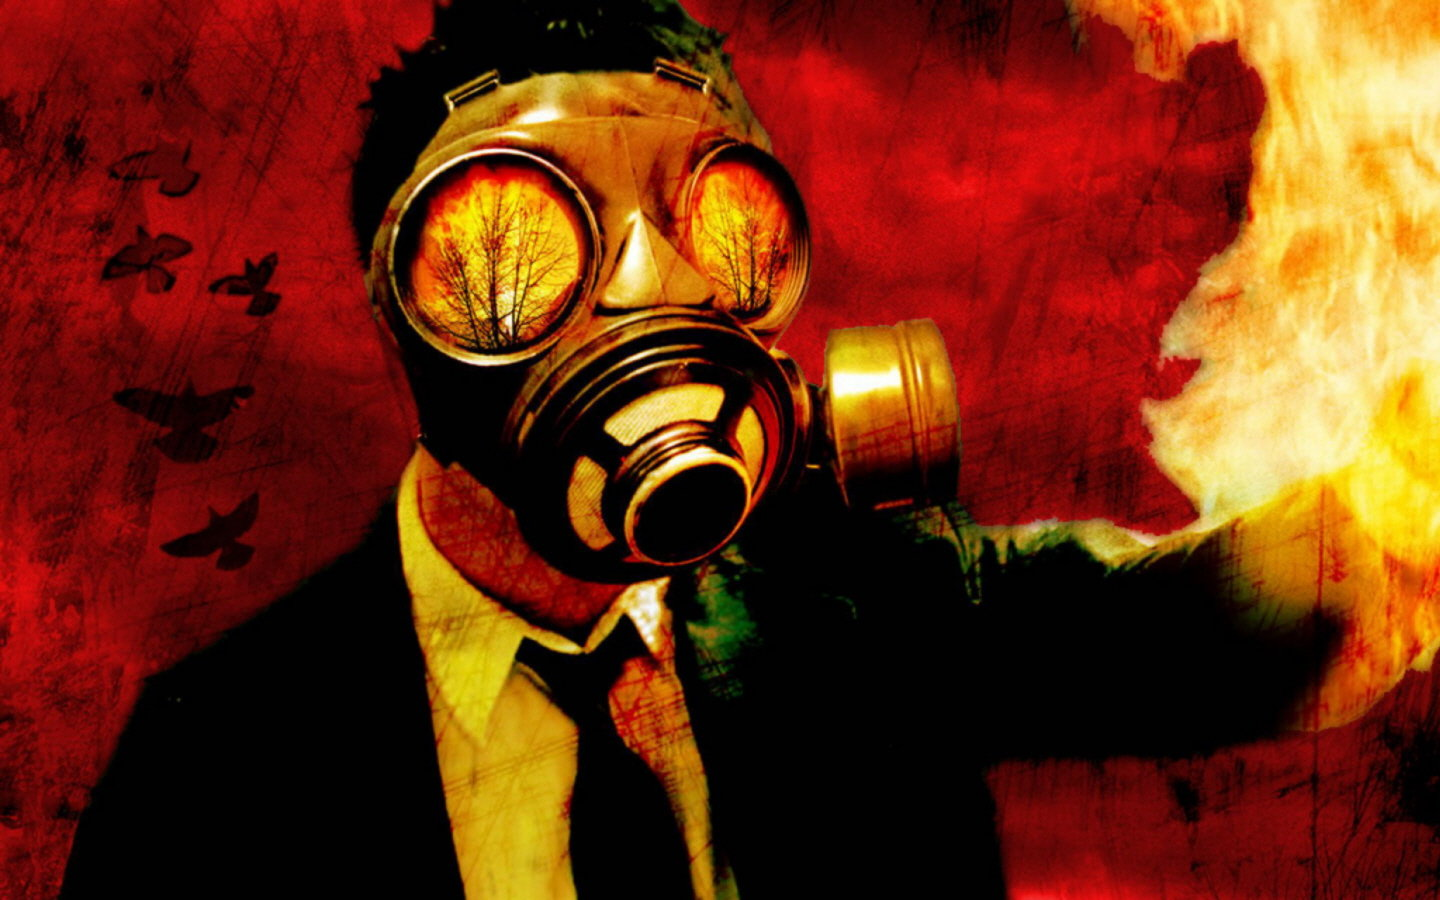 Free Download Gas Mask Wallpaper Id161504 Hd 1440x900 For